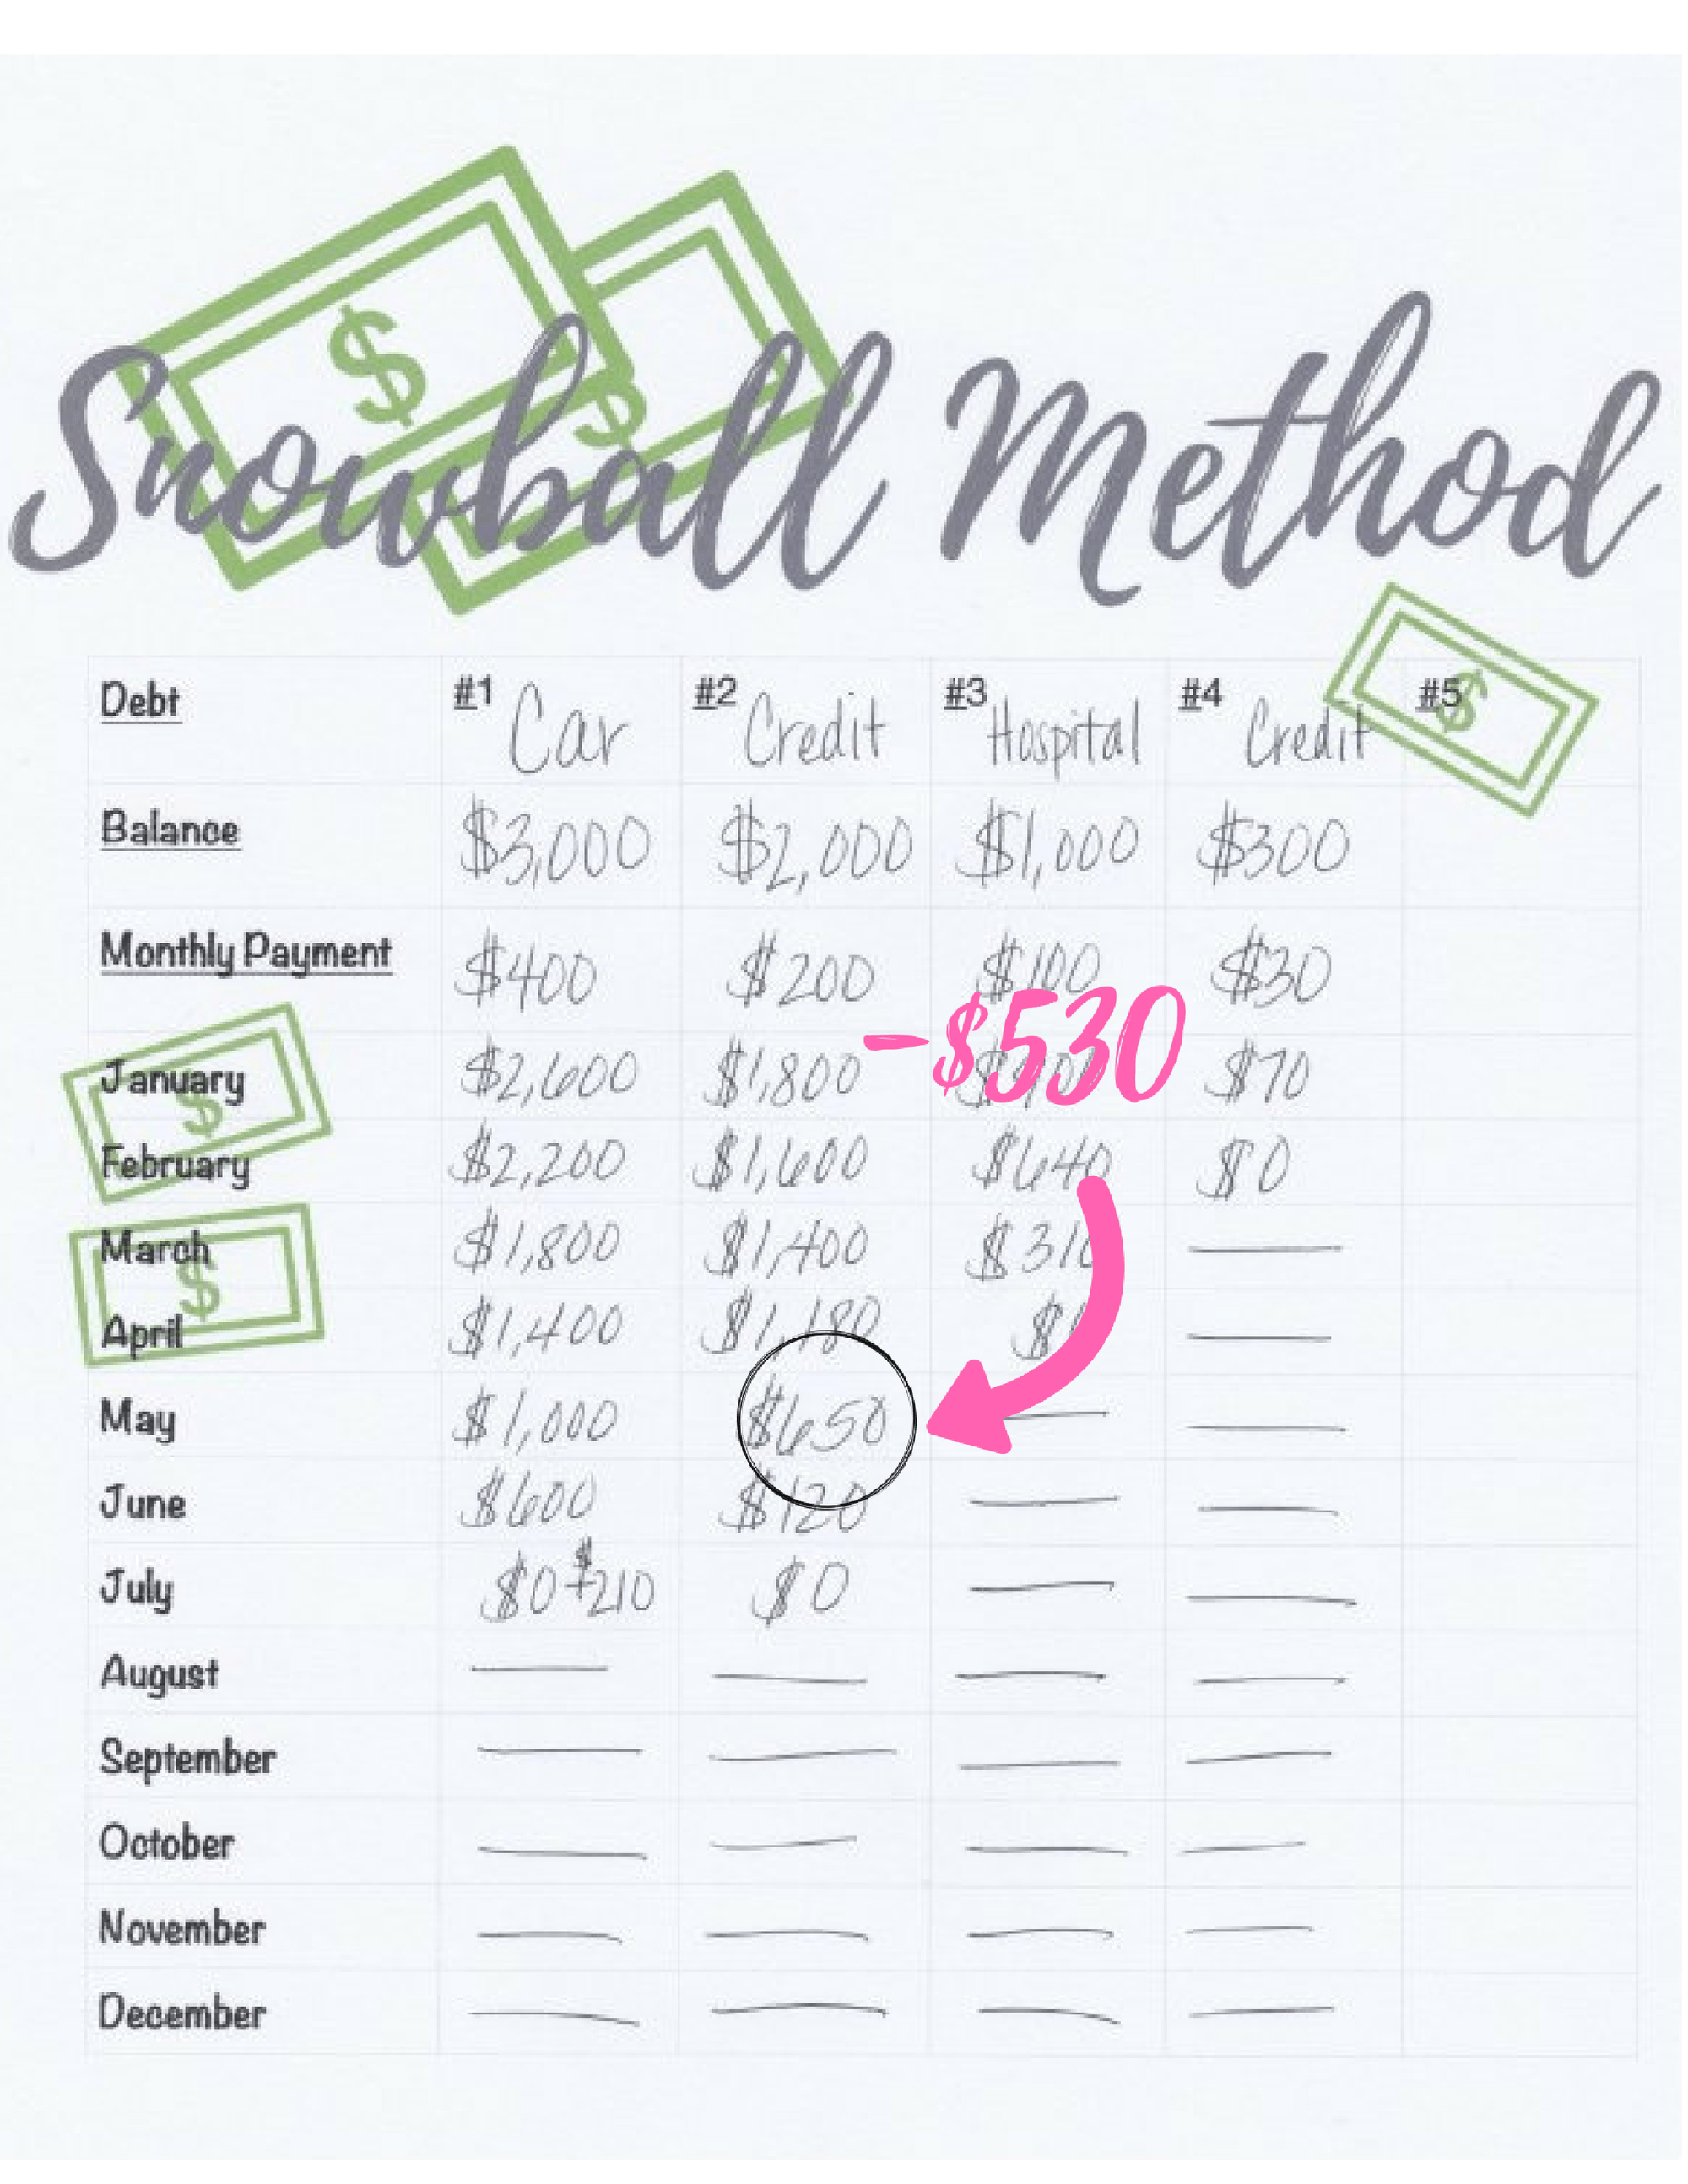 Debt Snowball Can Pay Off $6,000 In 6 Months. Here's How - Free Printable Debt Snowball Worksheet